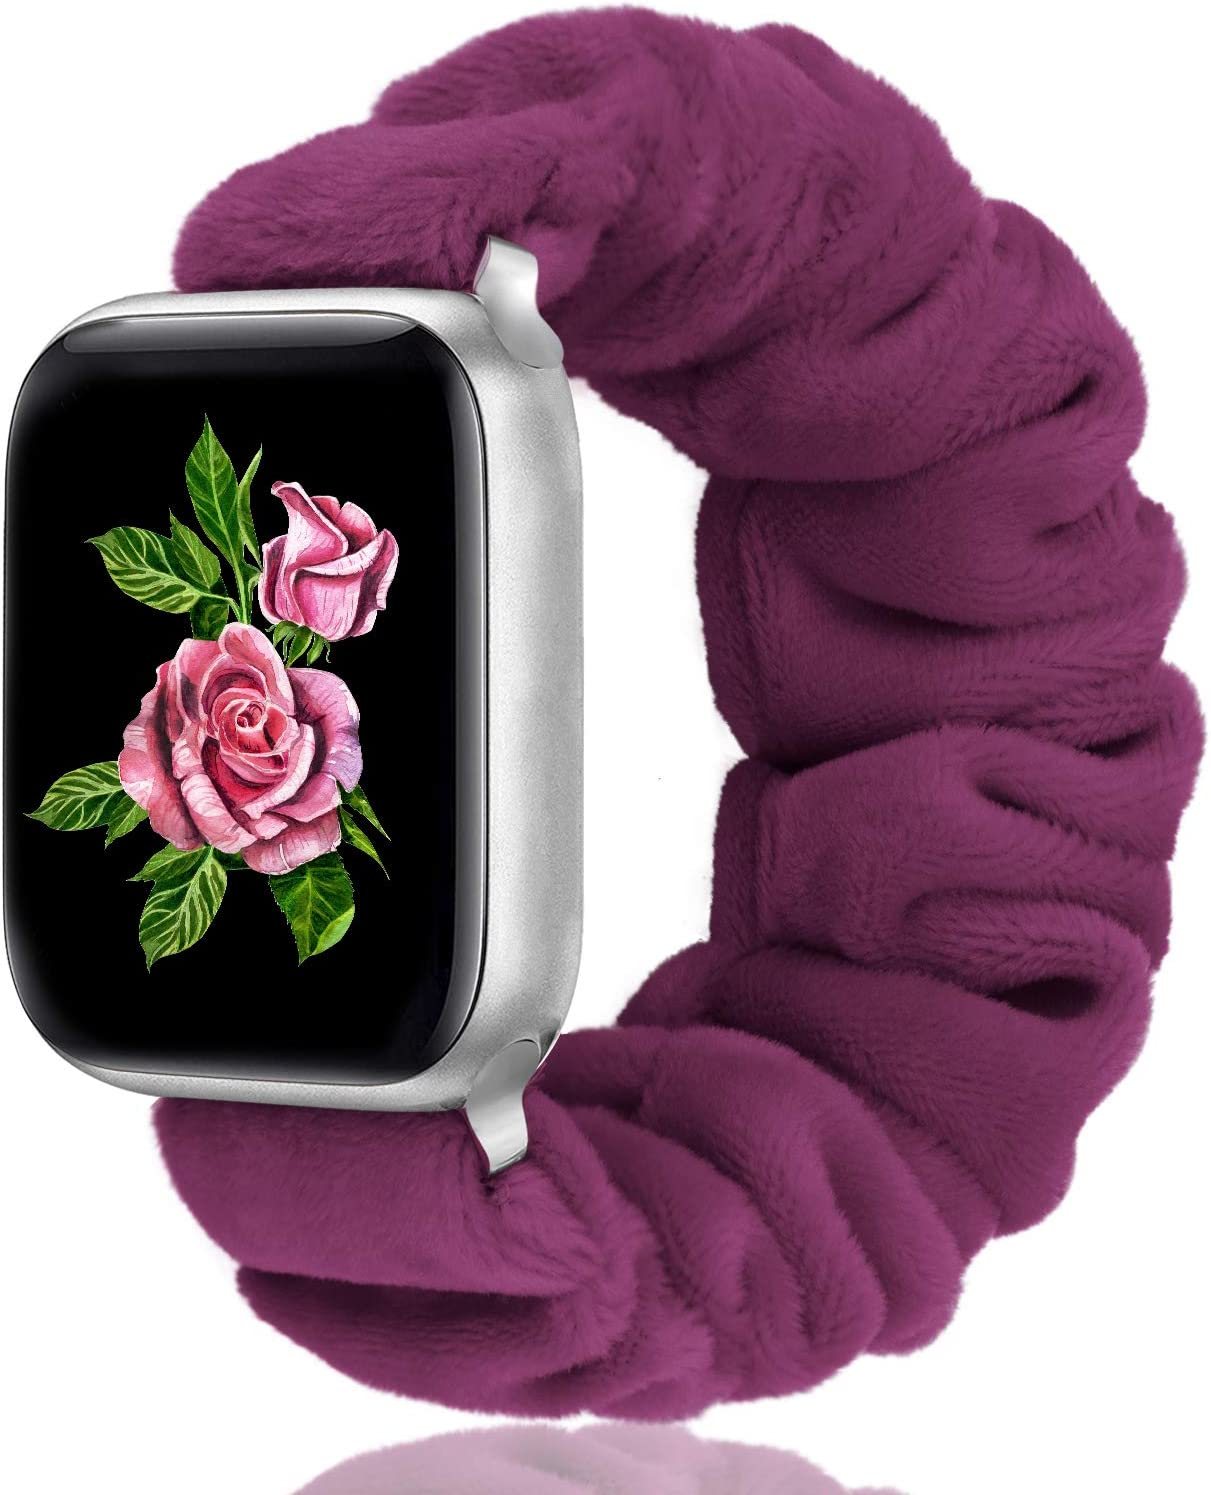 Greatfine Compatible with Apple Watch Band Scrunchie 38mm 40mm 42mm 44mm for Women,Stretchy for iwatch Bands,Short Plush Fabric Bracelet Straps for Apple Watch Series SE 6 5 4 3 2 1(Fuchsia,38/40-S)